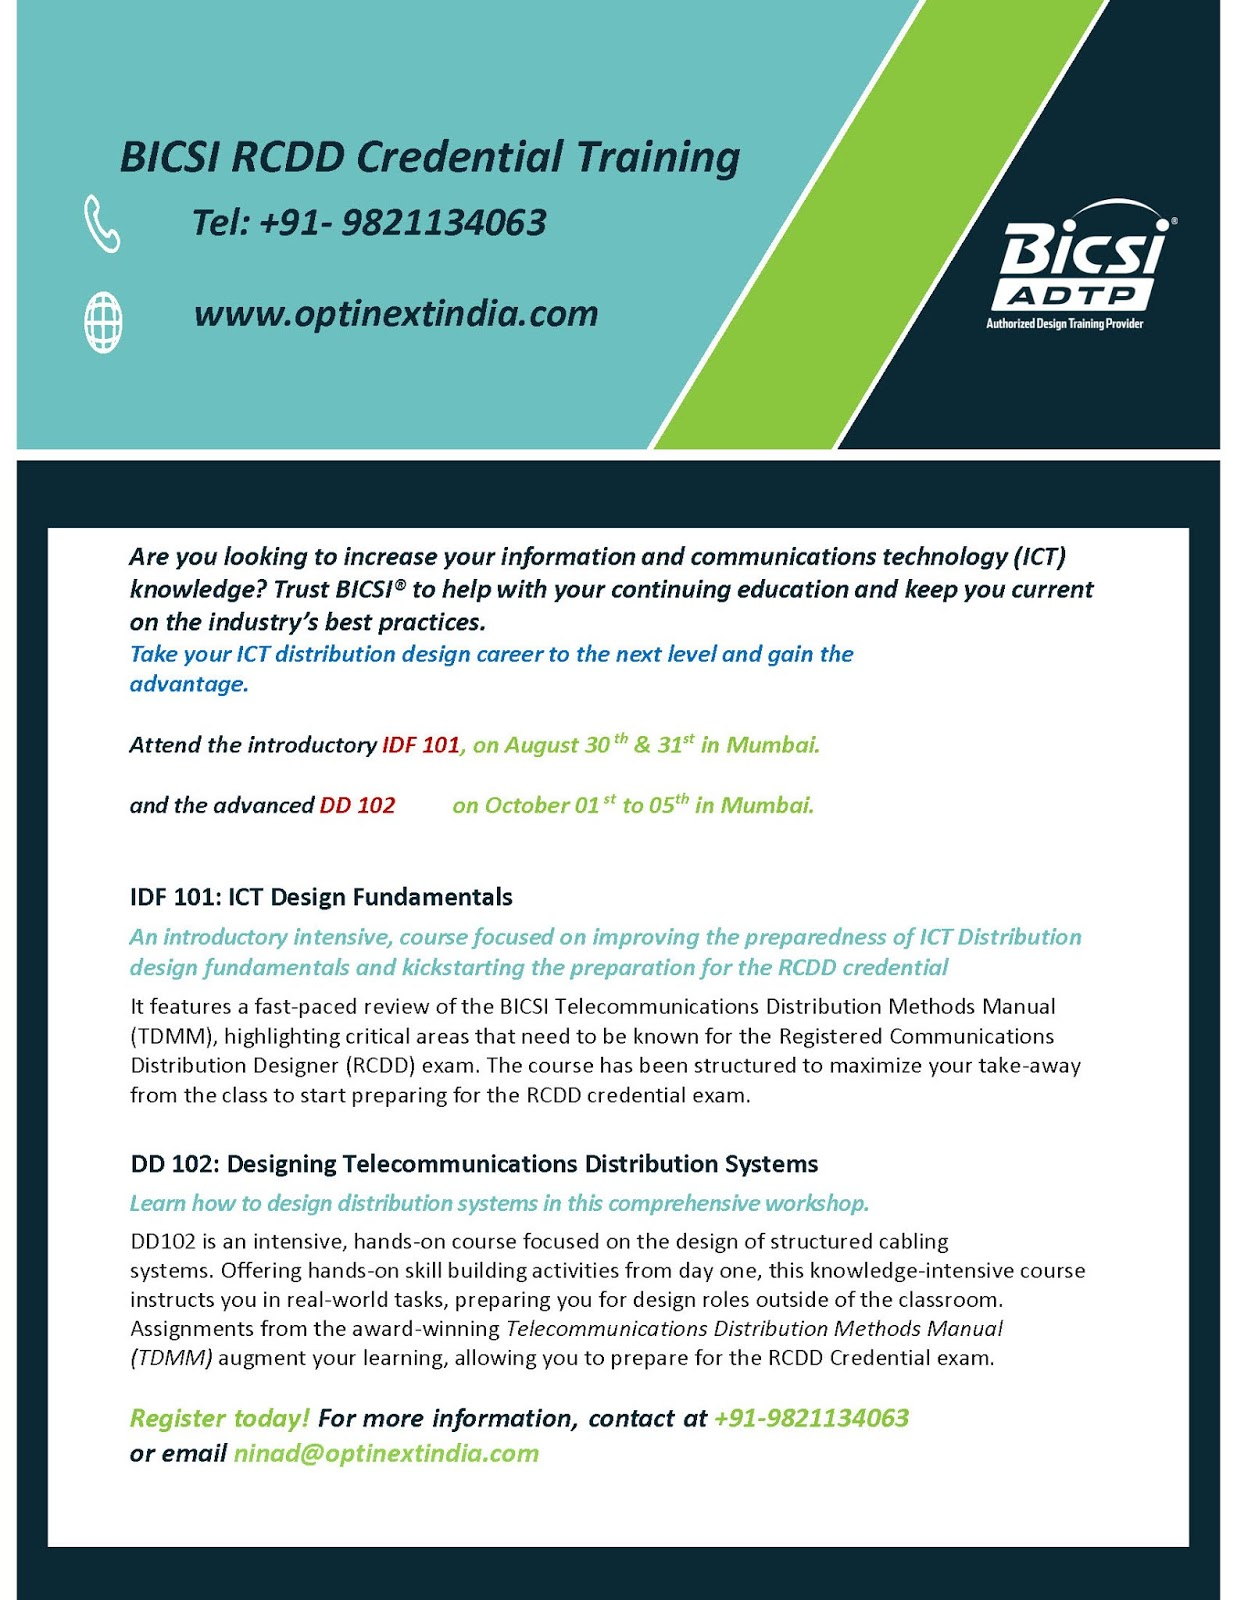 Bicsi India Fiber Optic Training Workshop 2015 Bangalore Lets